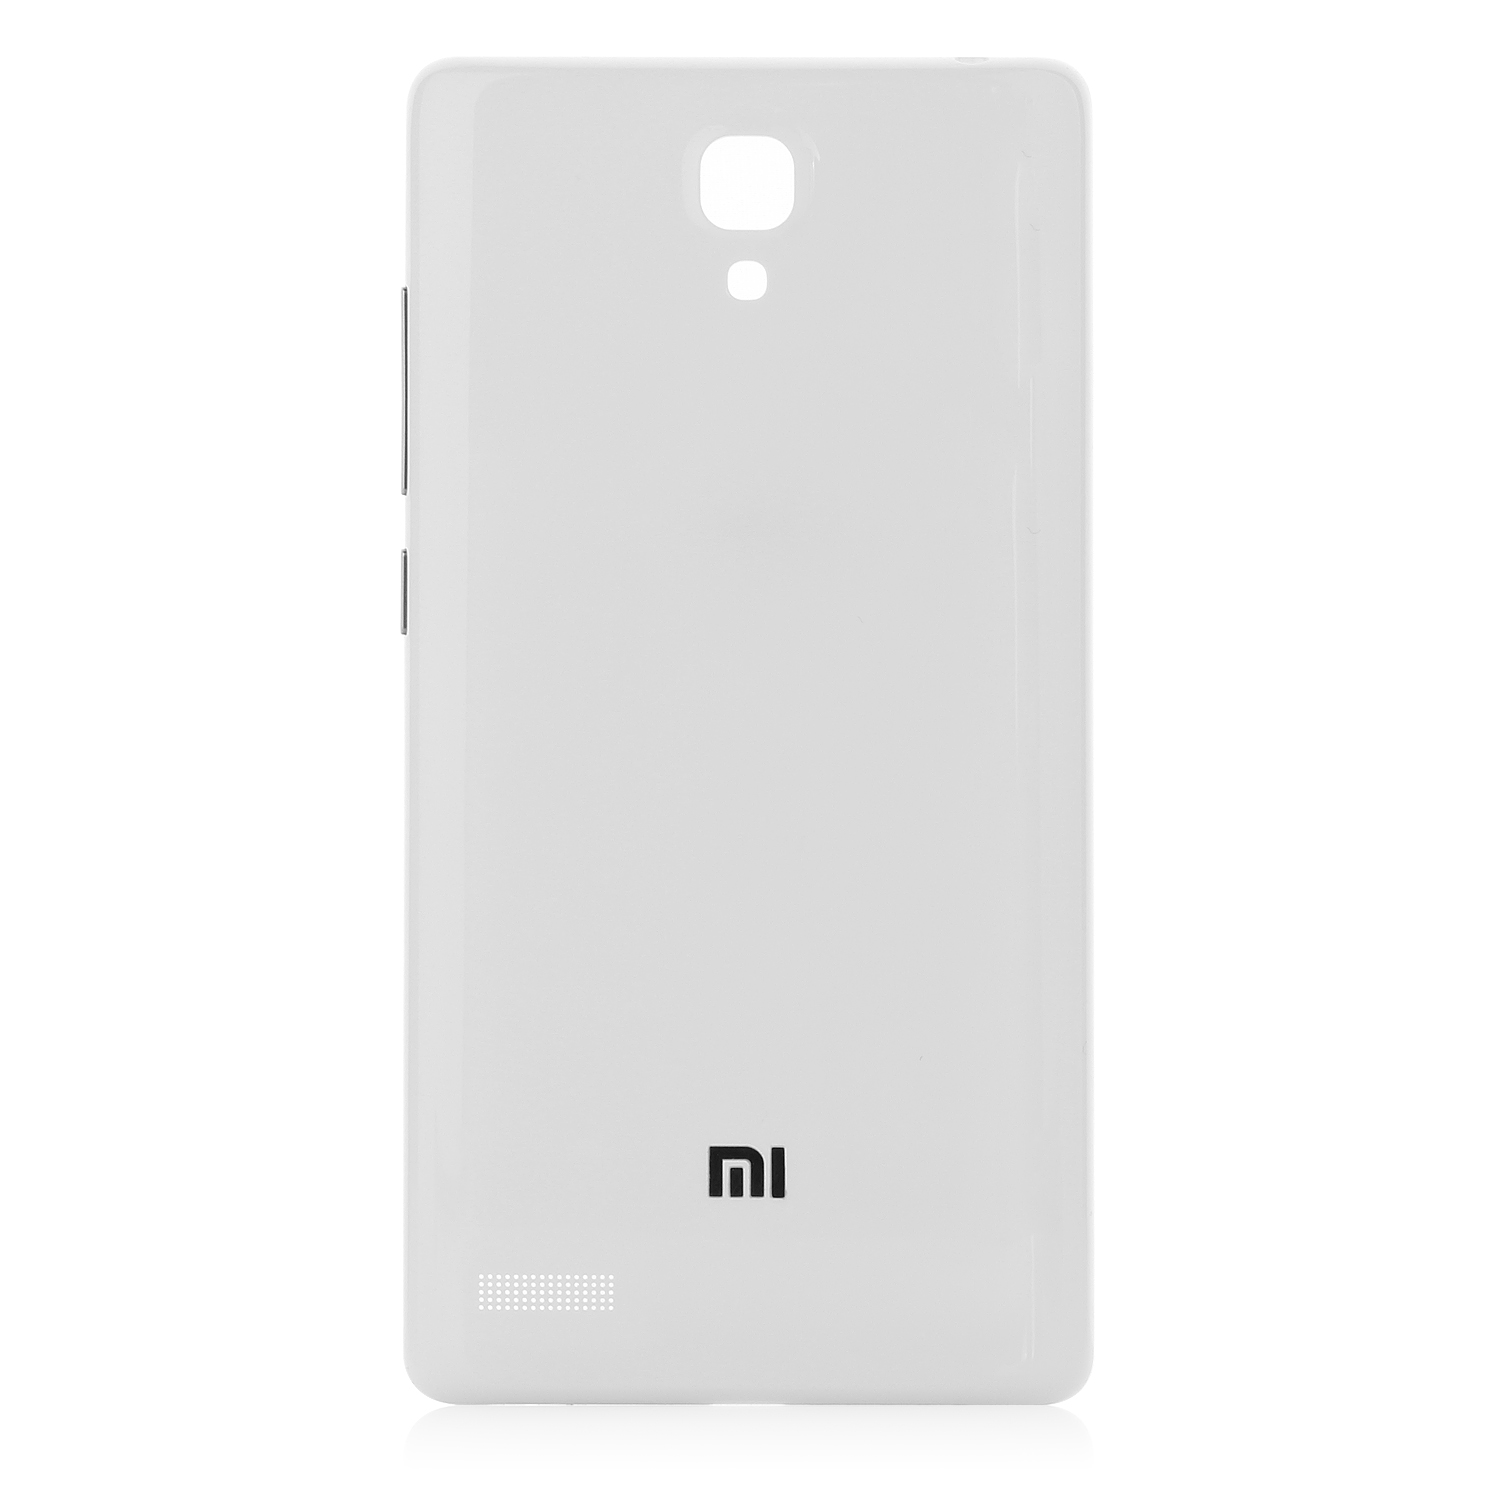 High Quality Replacement Battery Cover Back Case for XIAOMI Redmi Note Smartphone